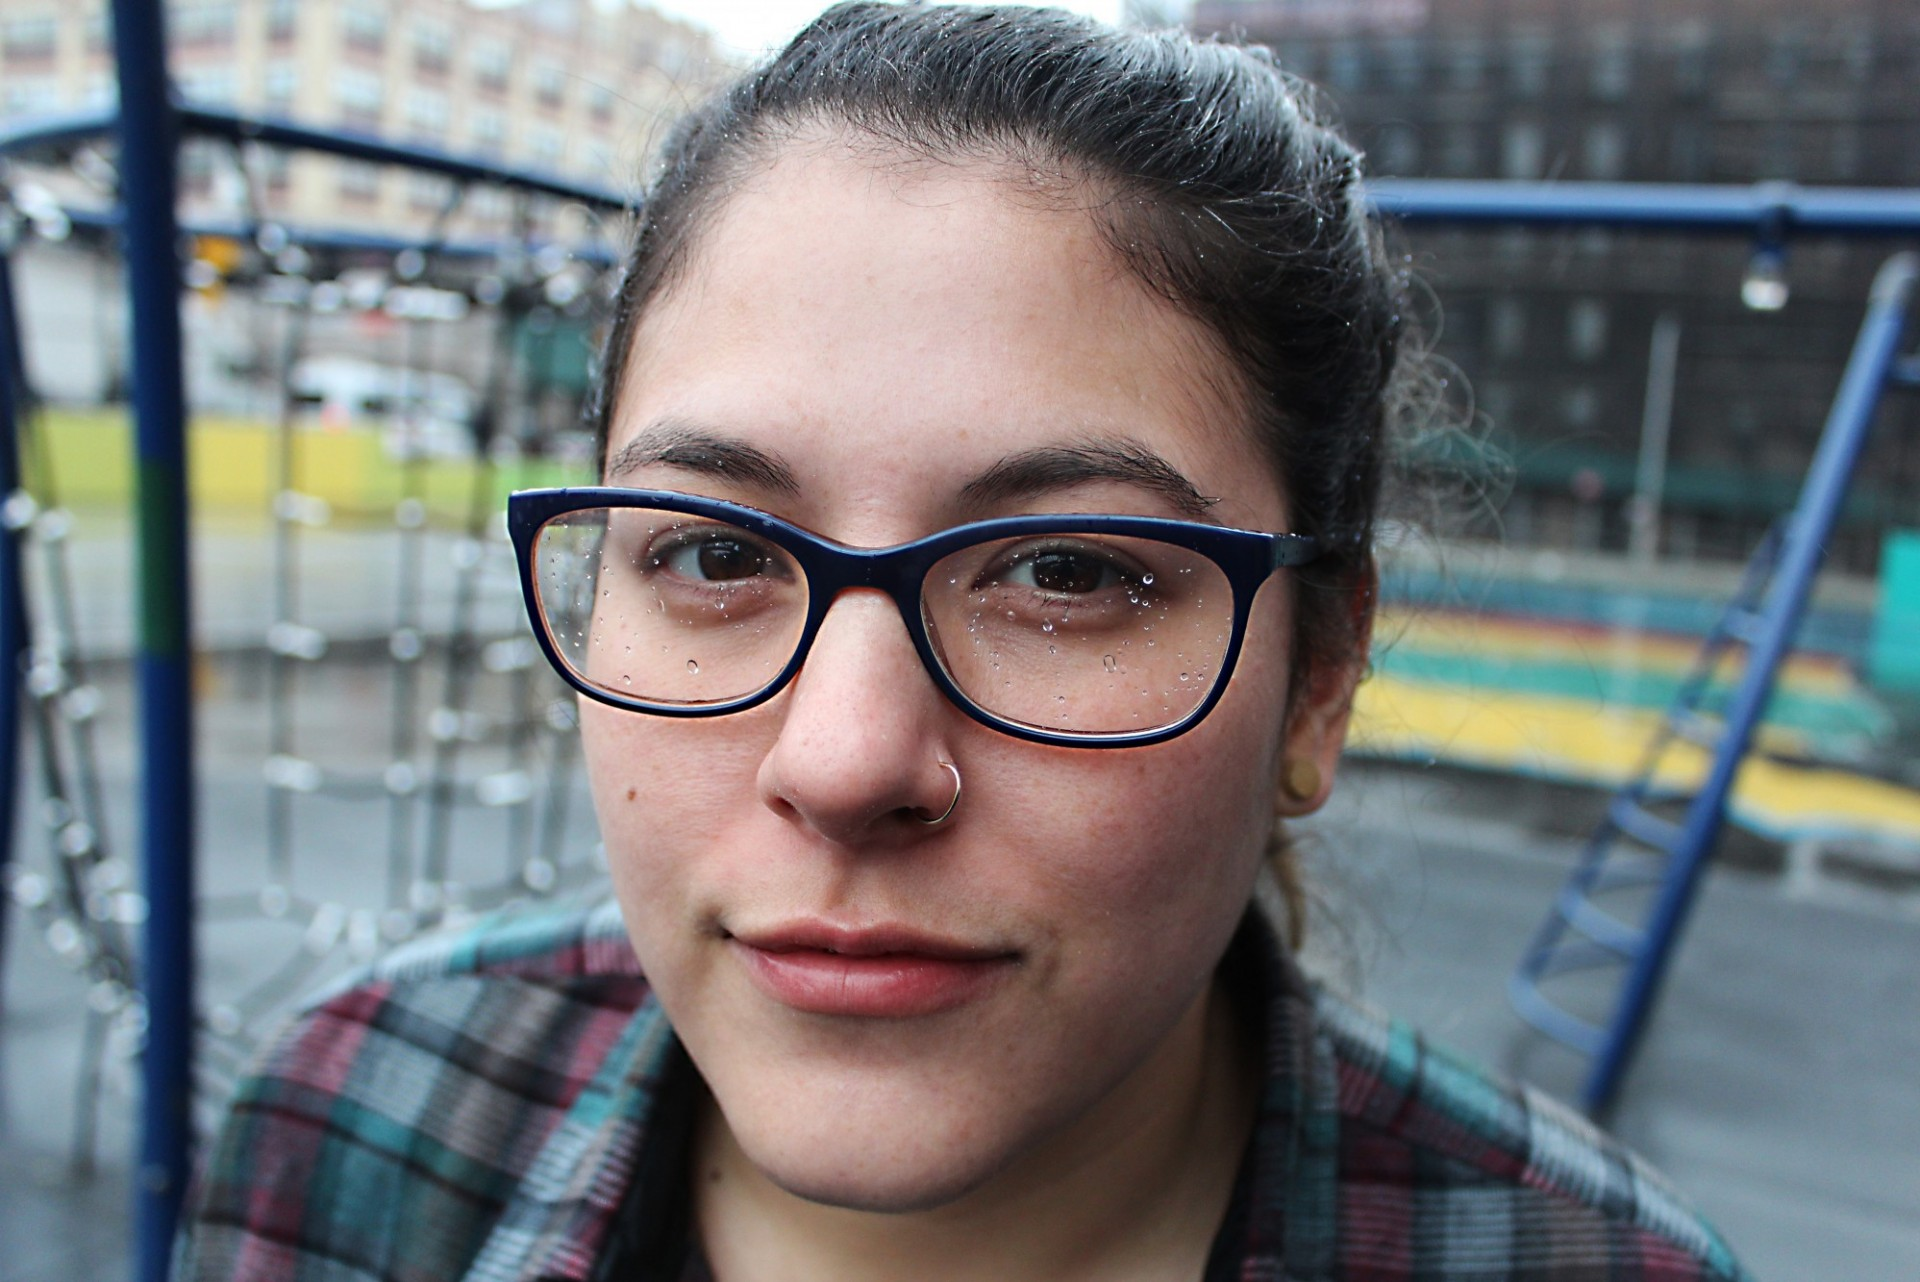 Close-up portrait of a young woman wearing glasses, with a playground in the background